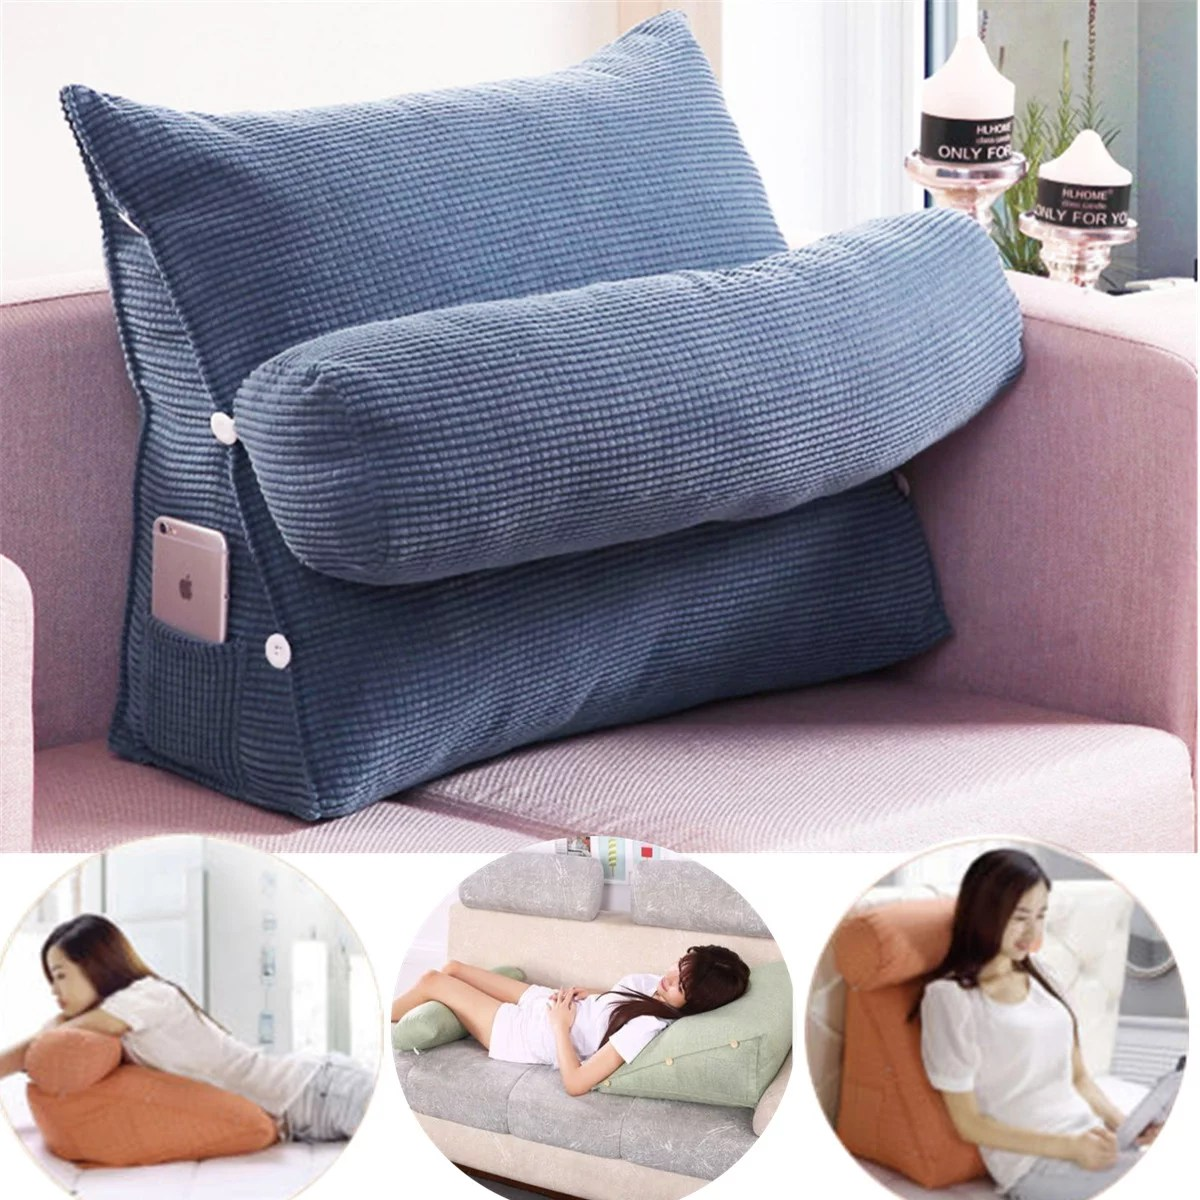 3 gear adjustable back hack cushion pillow high grade pearl wool back pillow for office chair sofa bed